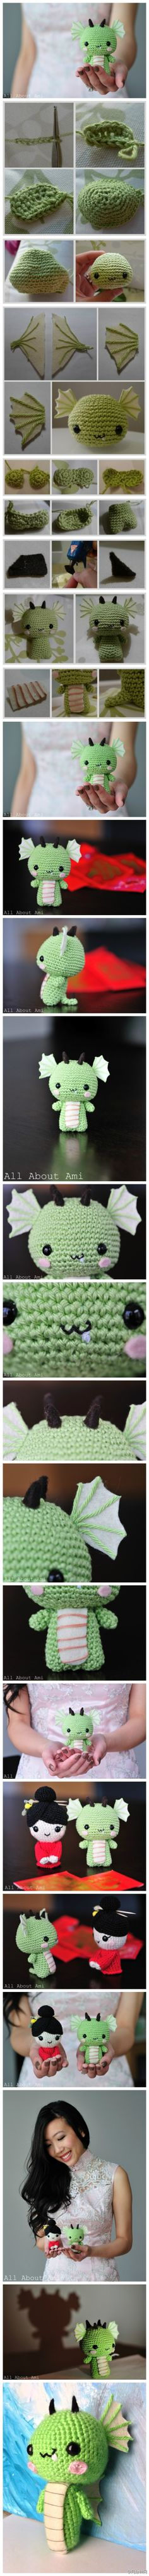 手工 生活 艺术 钩针 钩花,Crochet Crafts for Kids, Free Printable Crochet Projects, Crochet Patterns, Tutorial, crafts, wool crafts, cute , kawaii, craft, diy, needle crafts for kids, adorable !!!